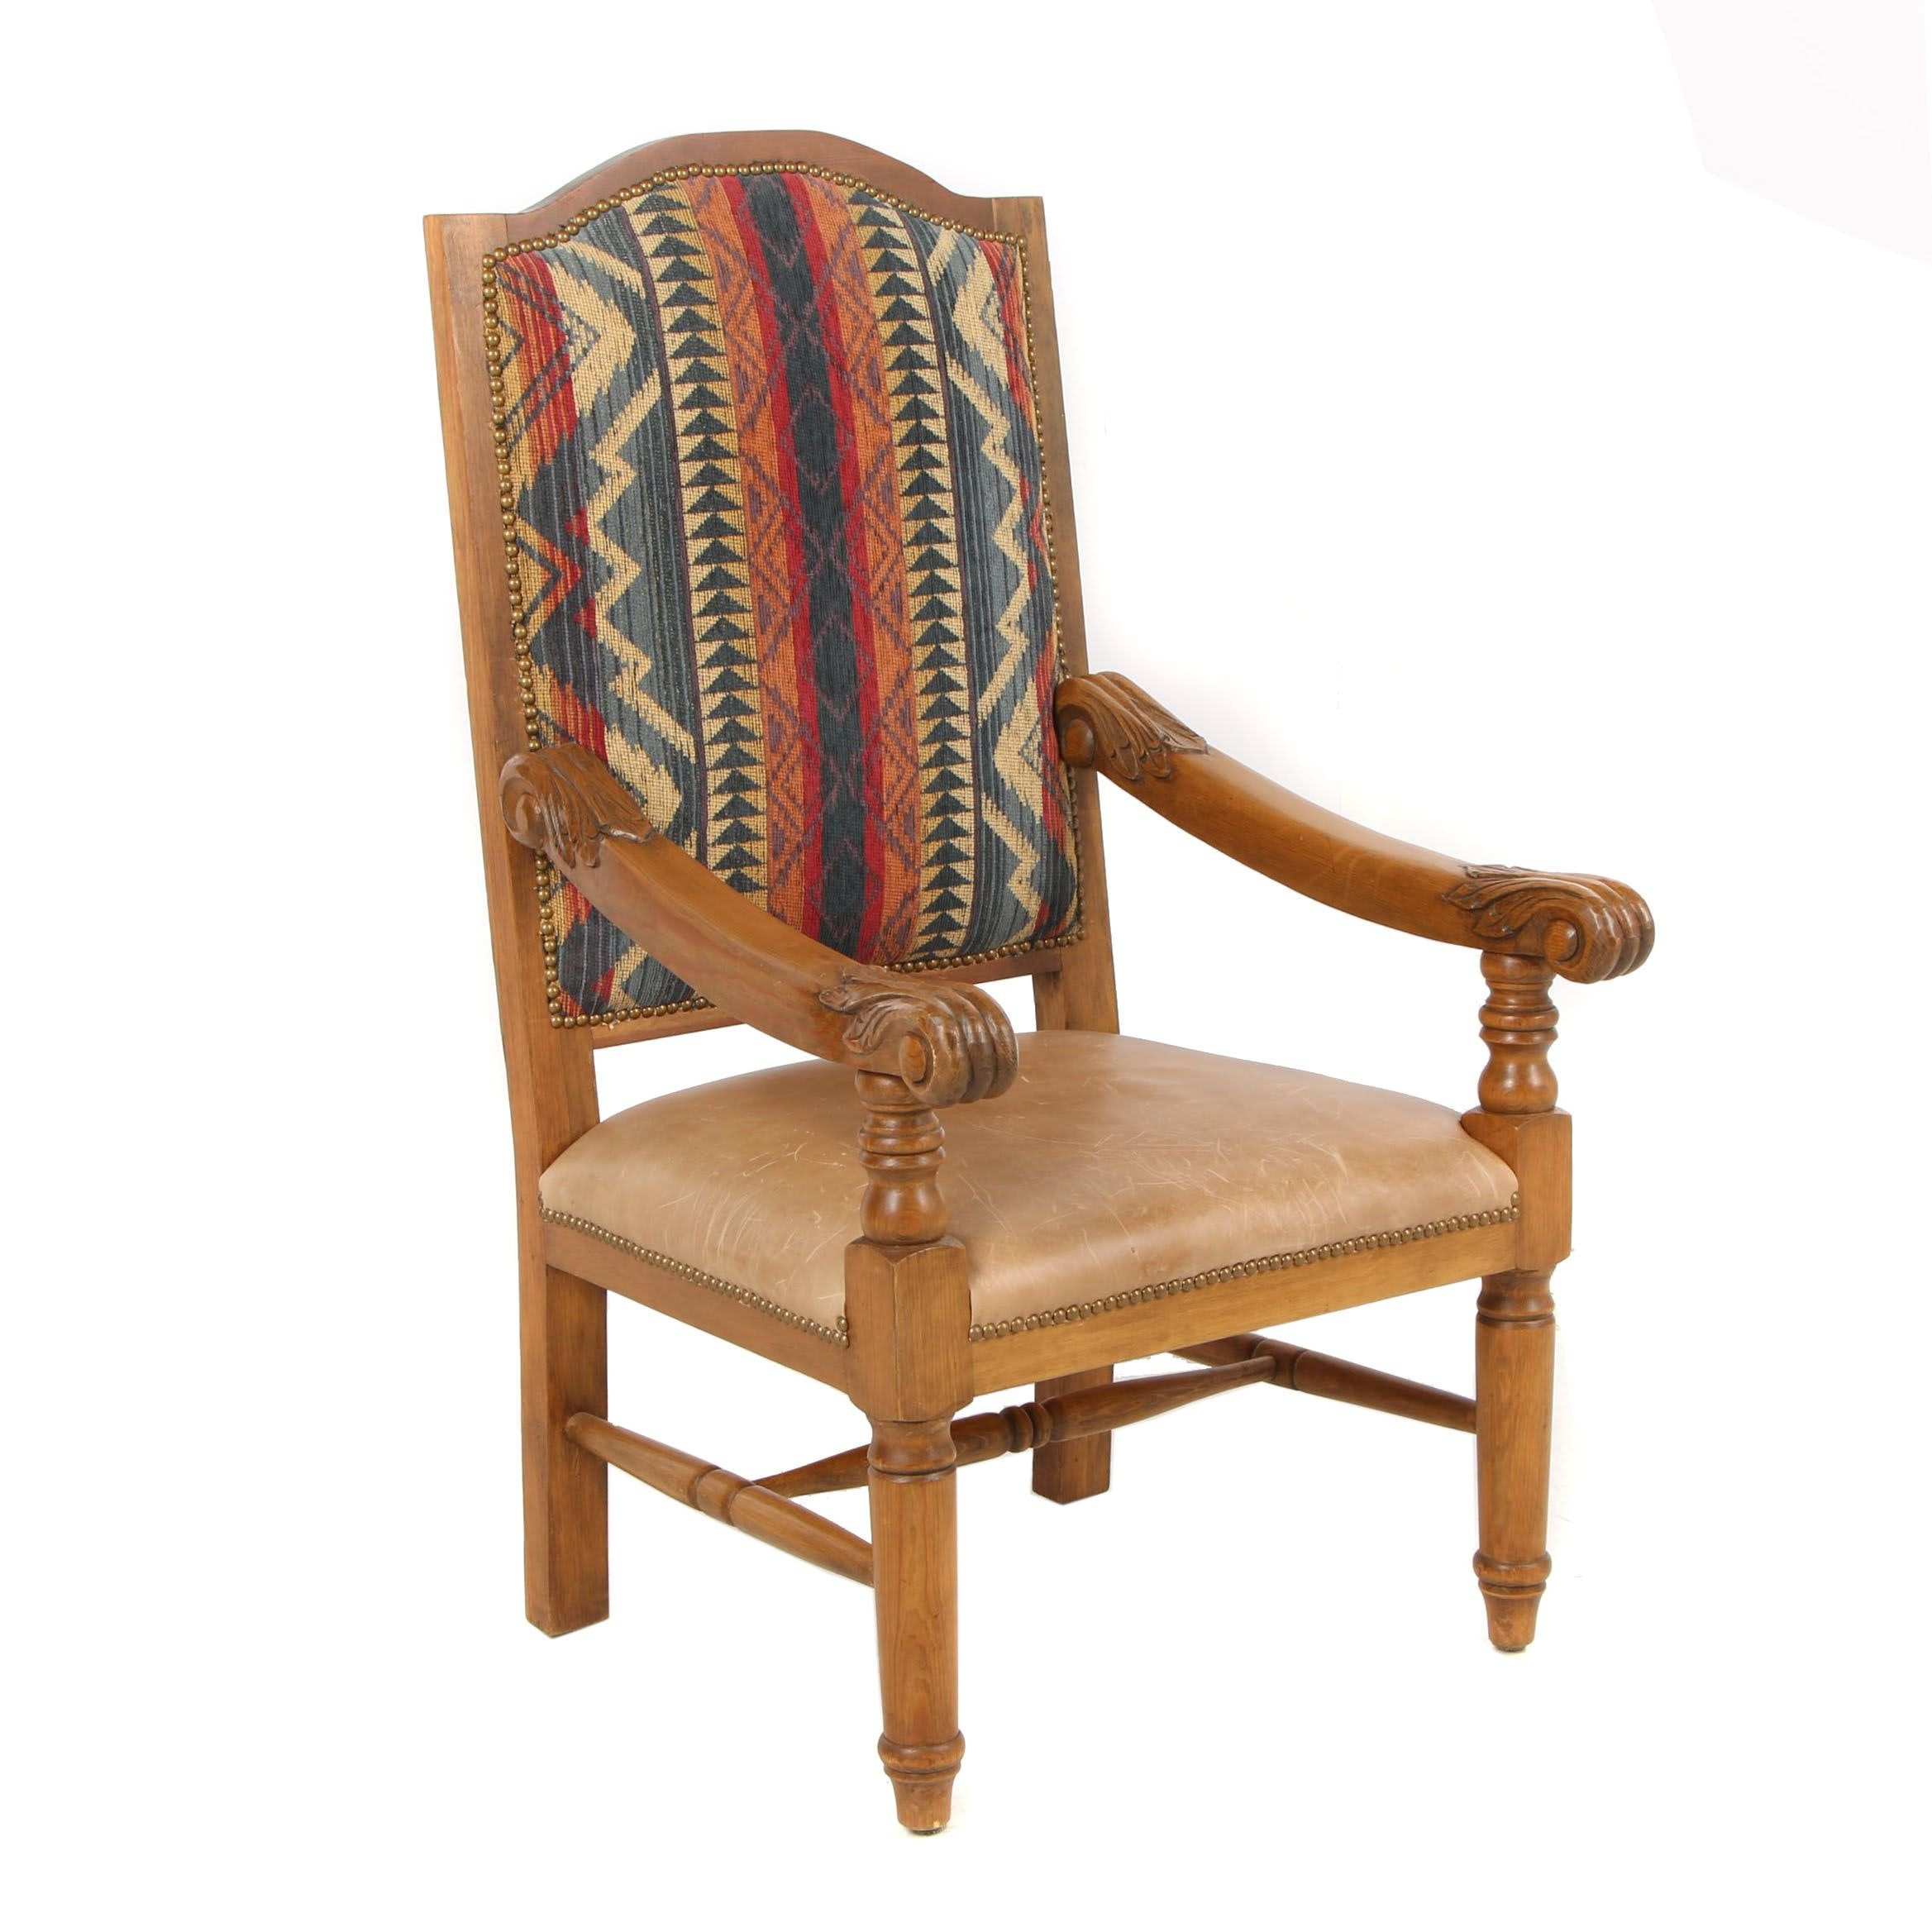 Leather and Kilim Upholstered Armchair